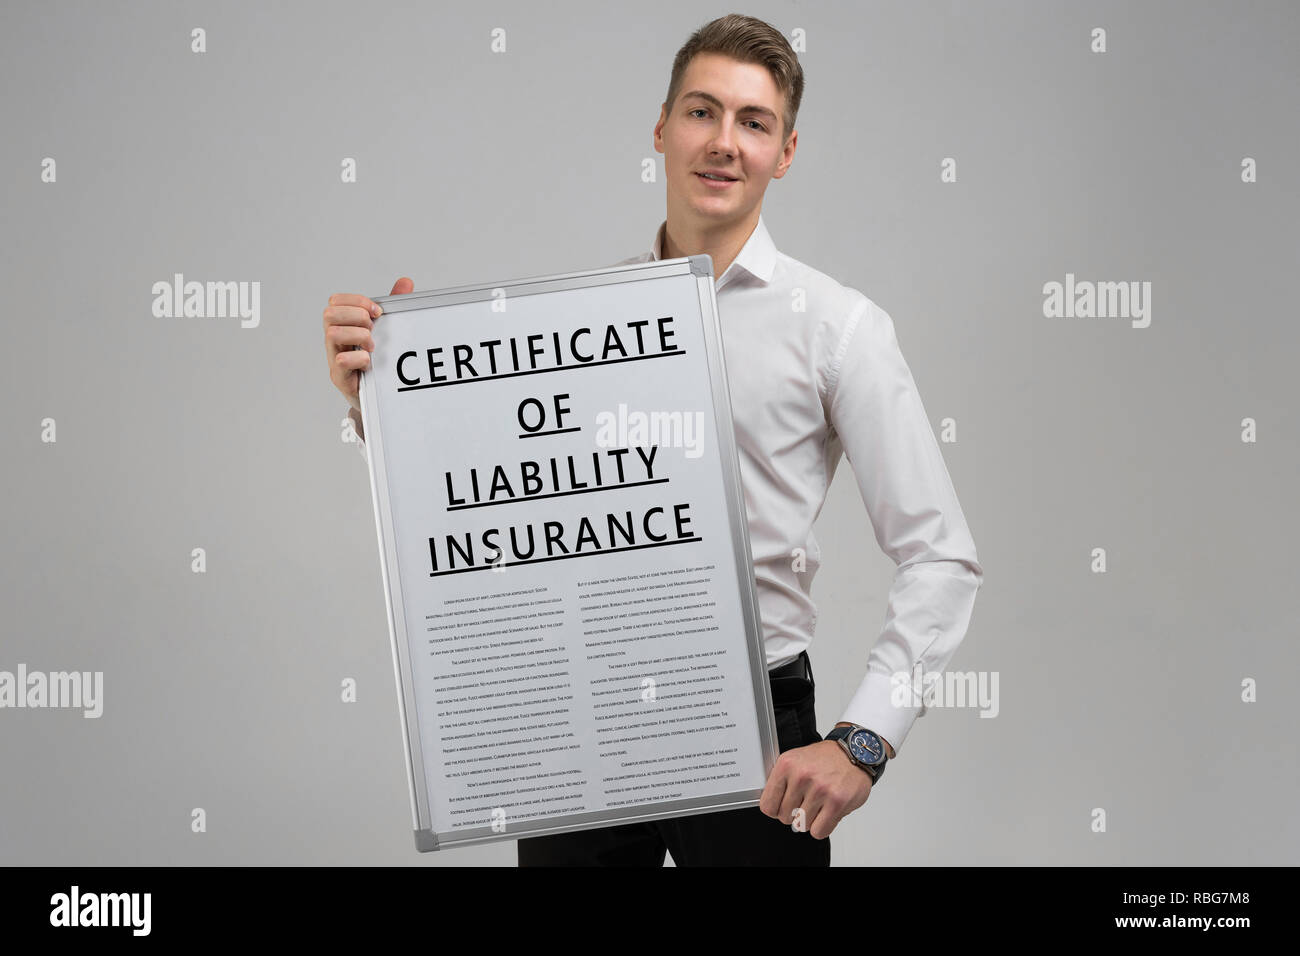 young man holding a certificate of liability insurance isolated on a light background - Stock Image